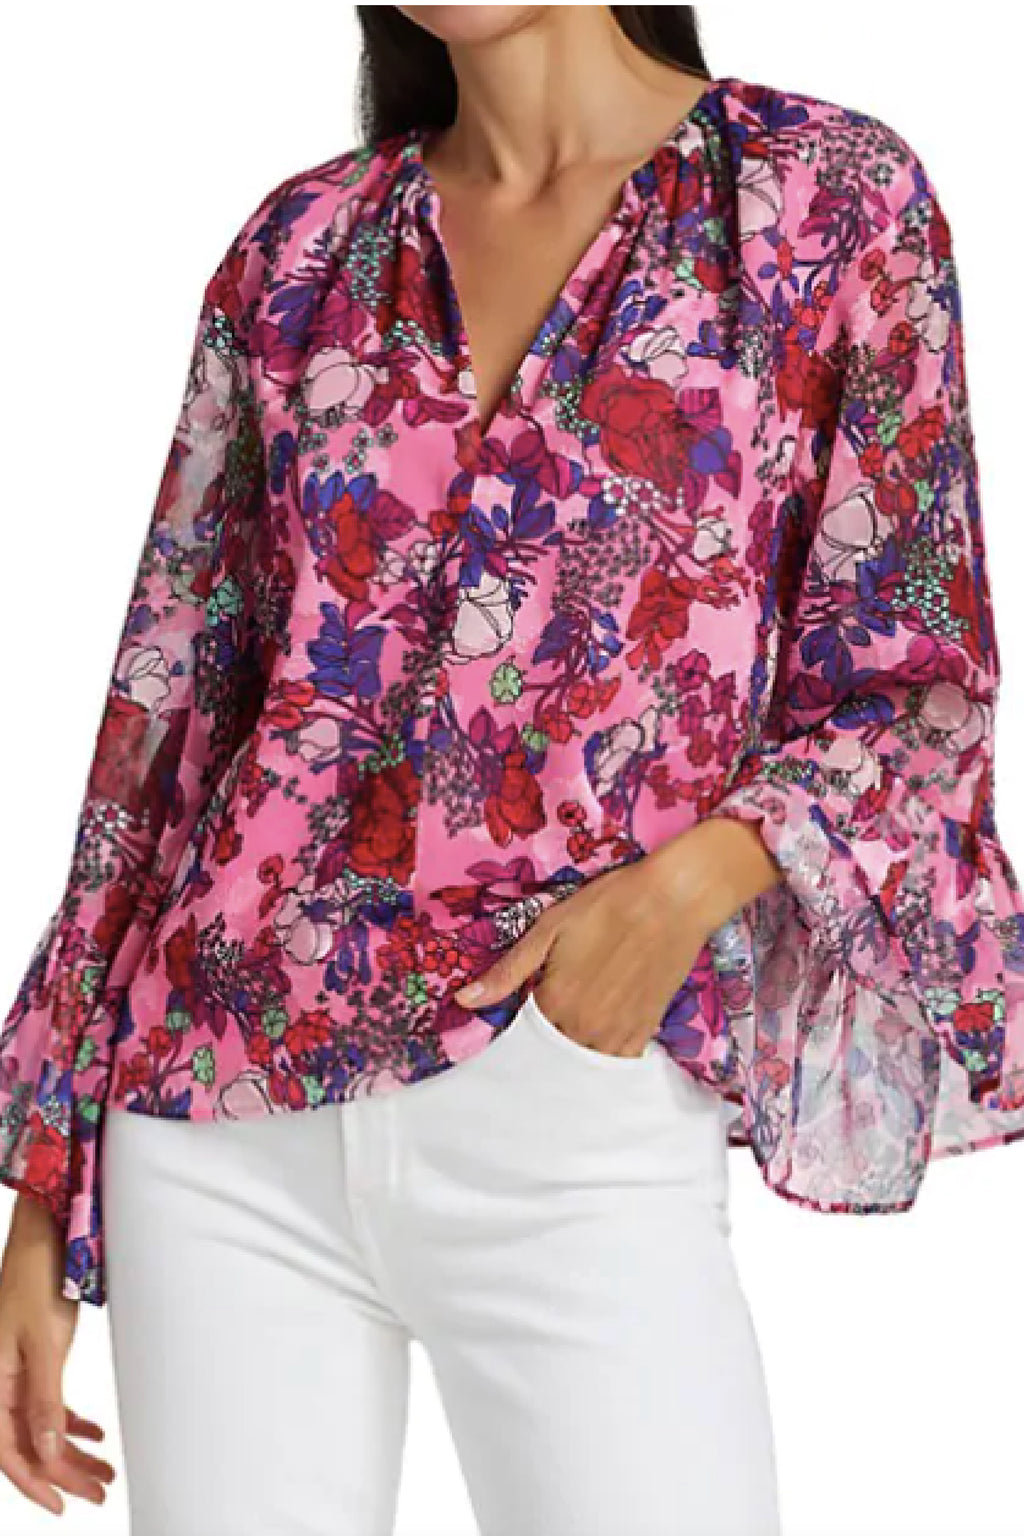 HARPER TOP in FLORAL NEON PINK